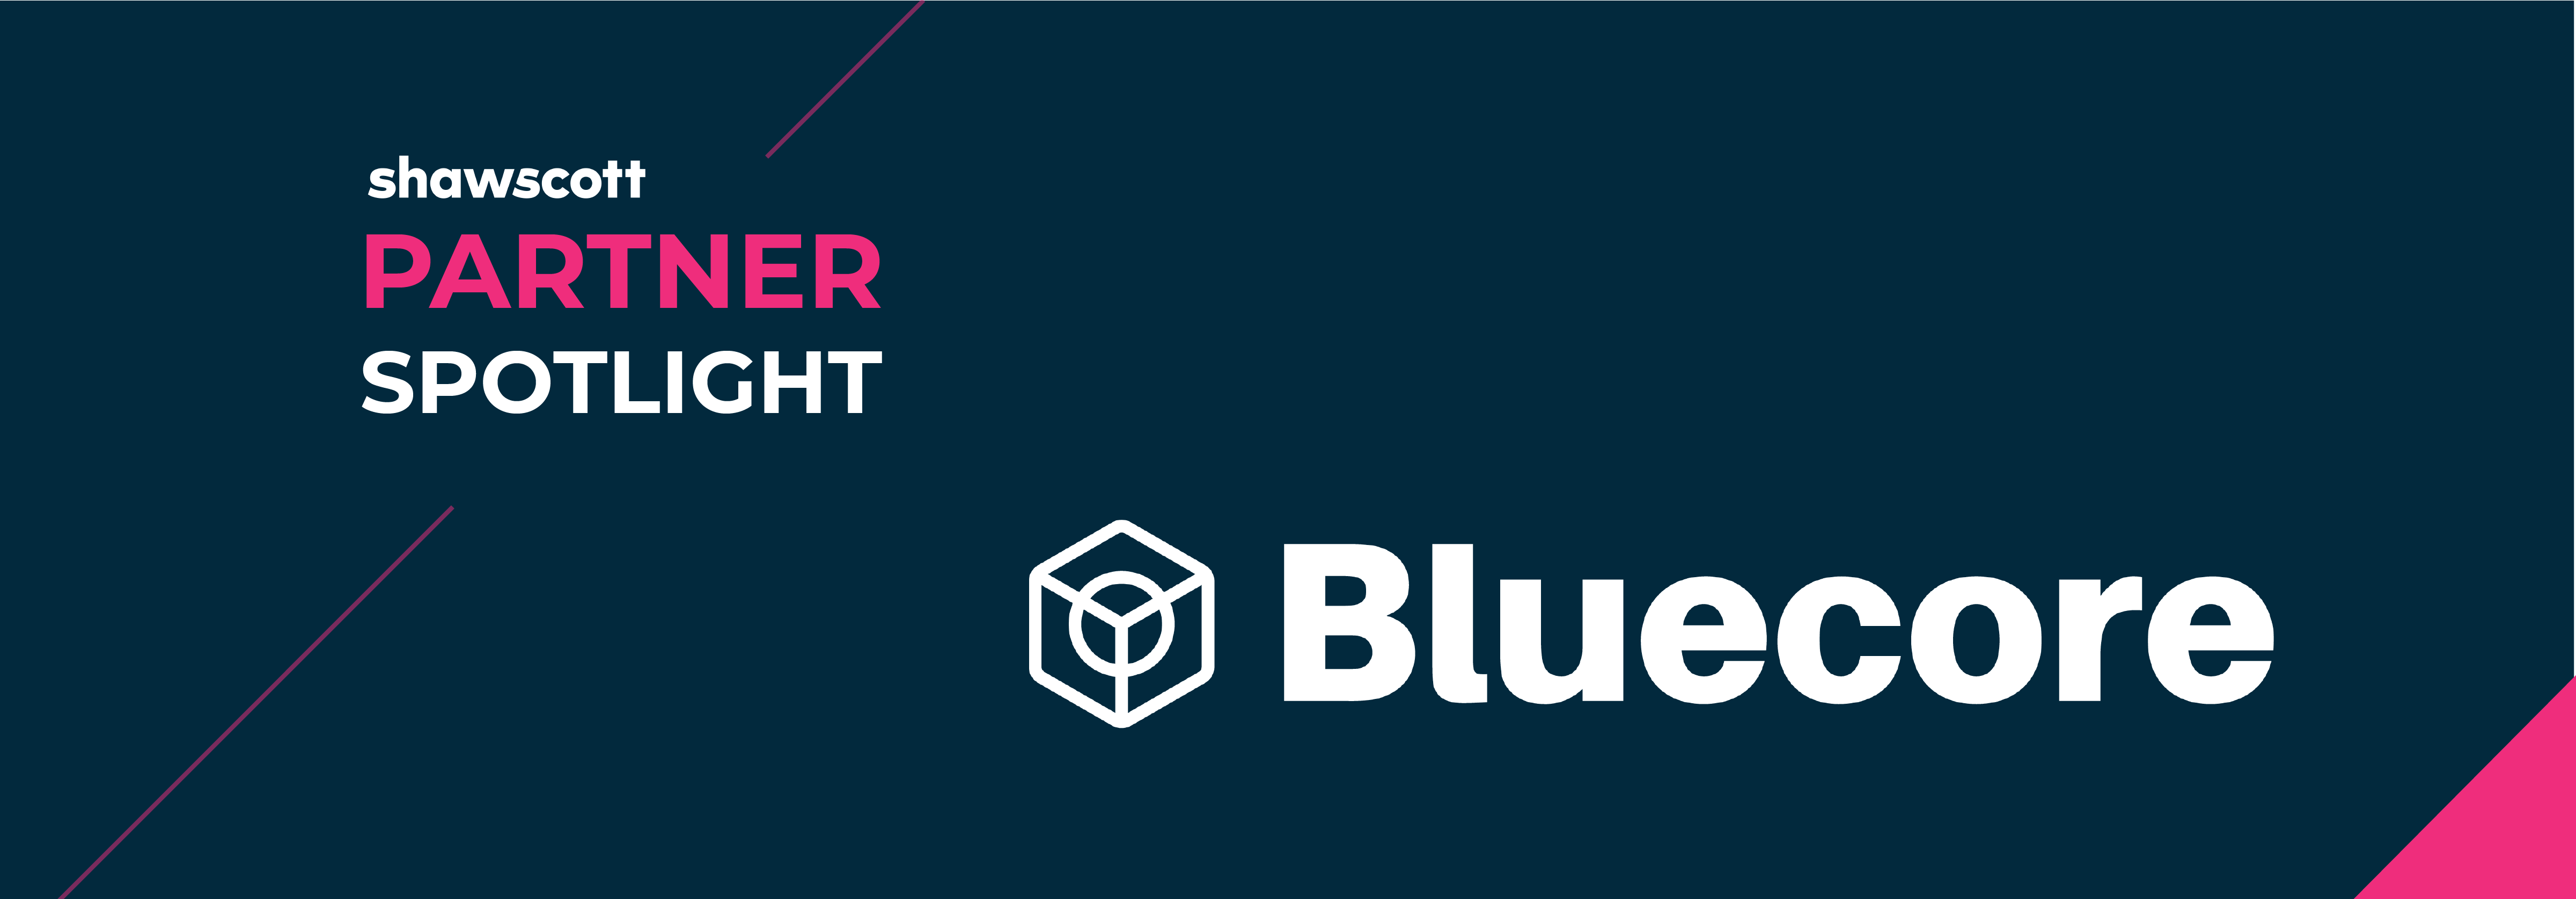 Partner Spotlight - Bluecore